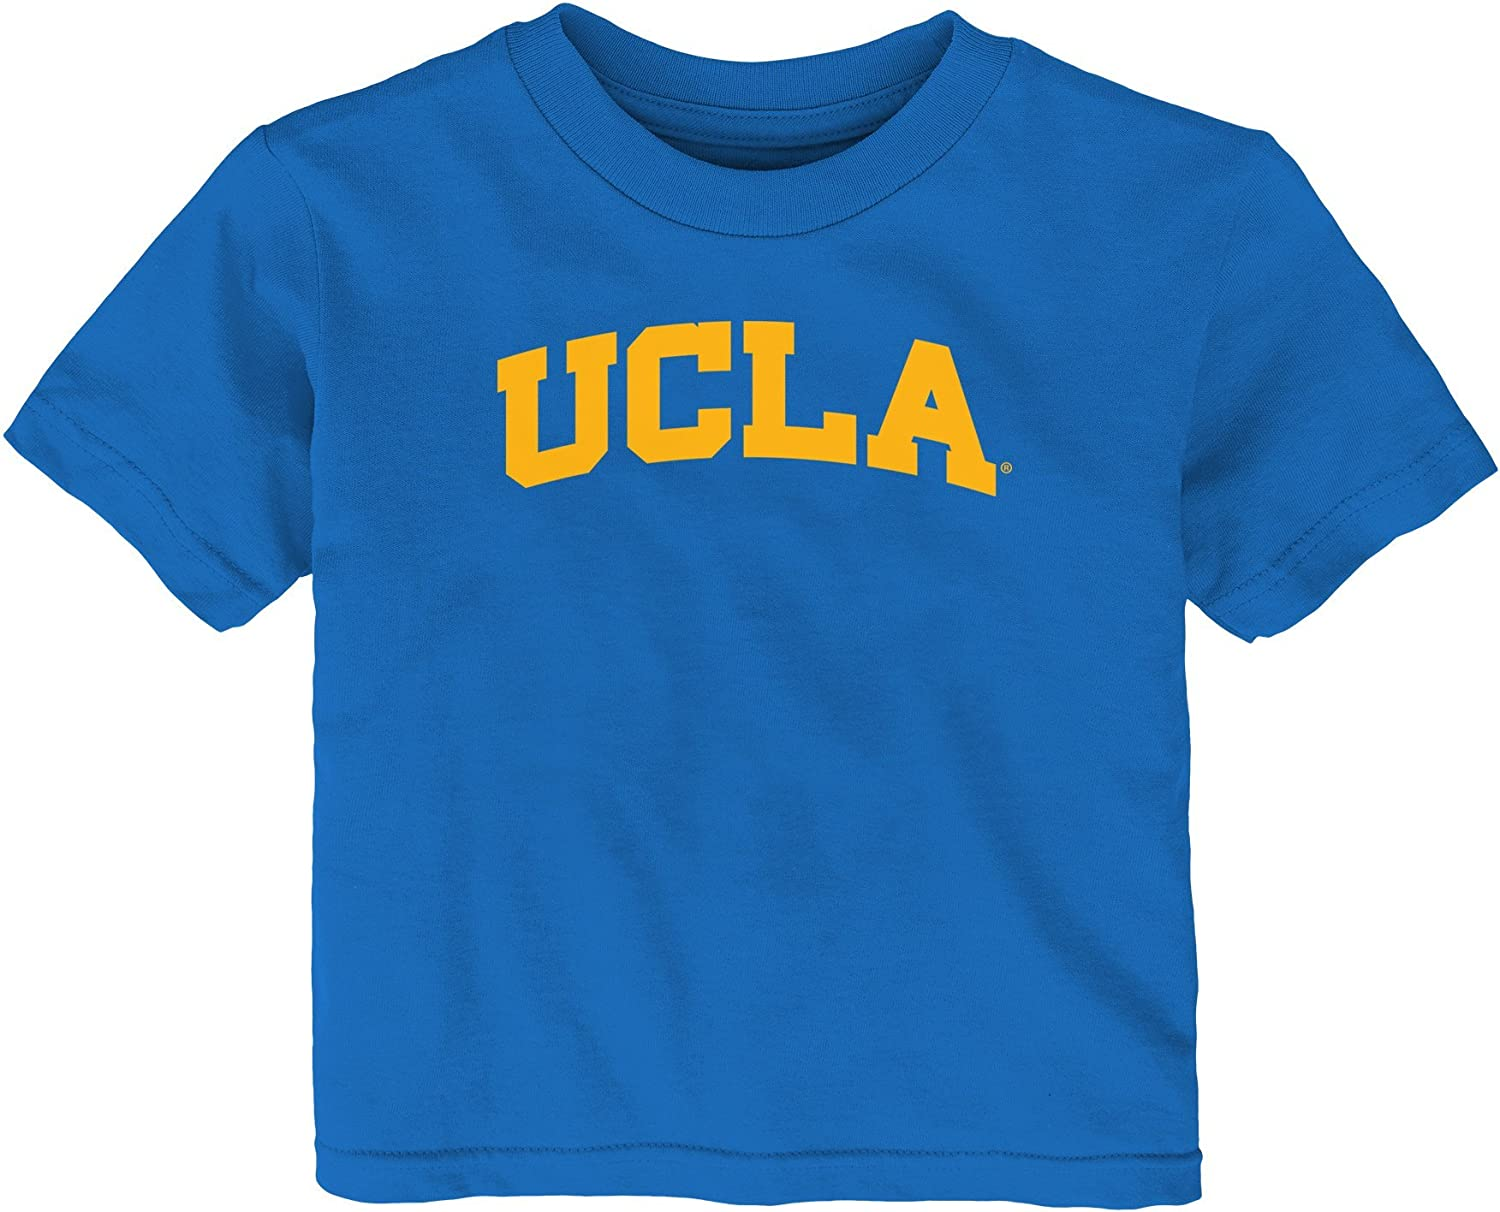 4 Kids Small Outerstuff NCAA Bruins Kids /& Youth Boys Sonic Boom Basic Tee Strong Blue